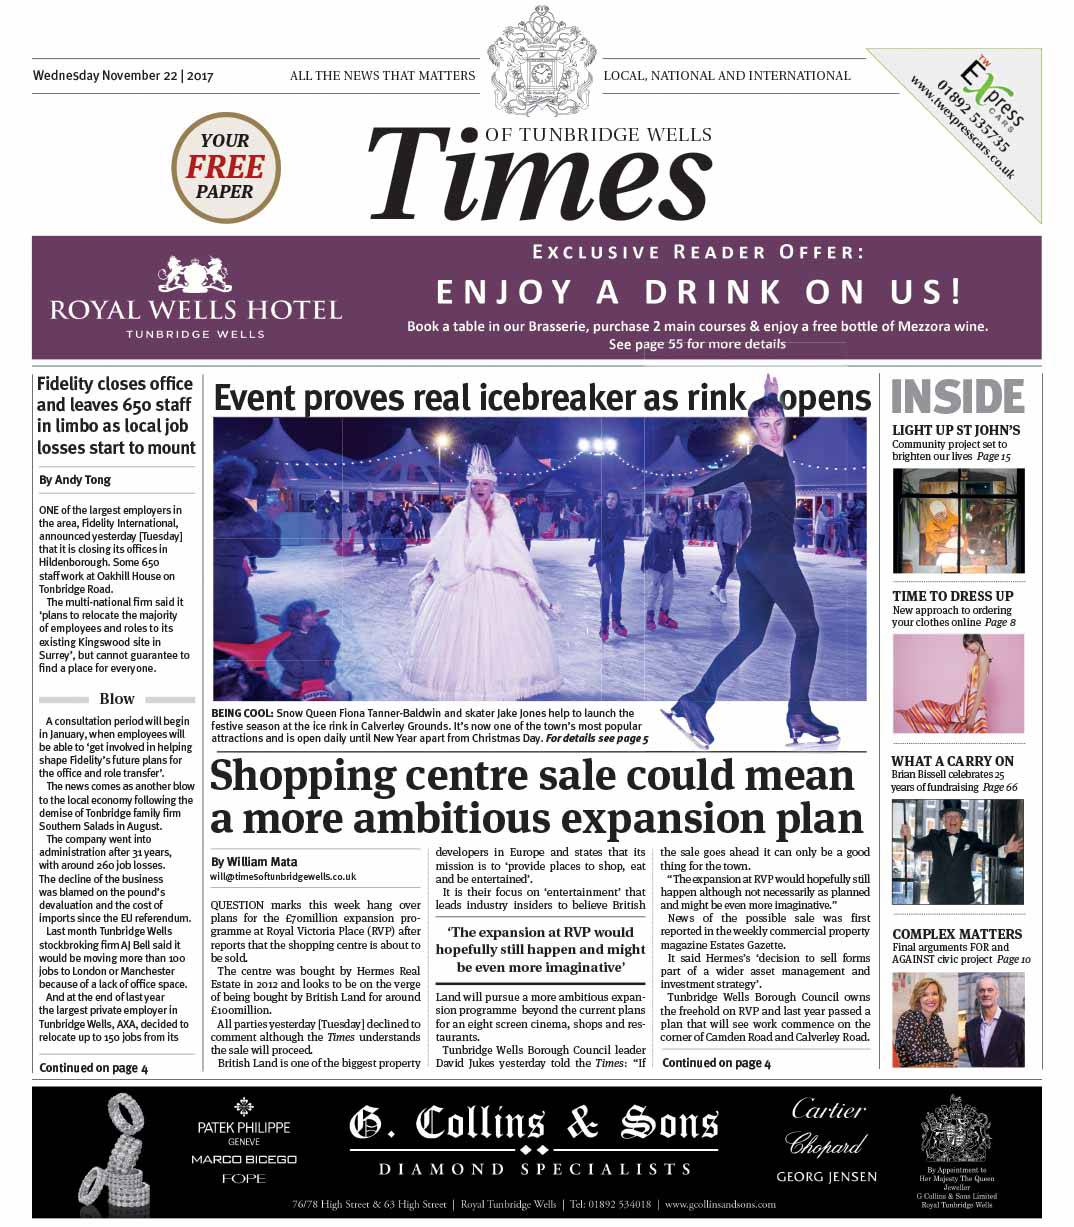 Read the Times of Tunbridge Wells 22nd November 2017